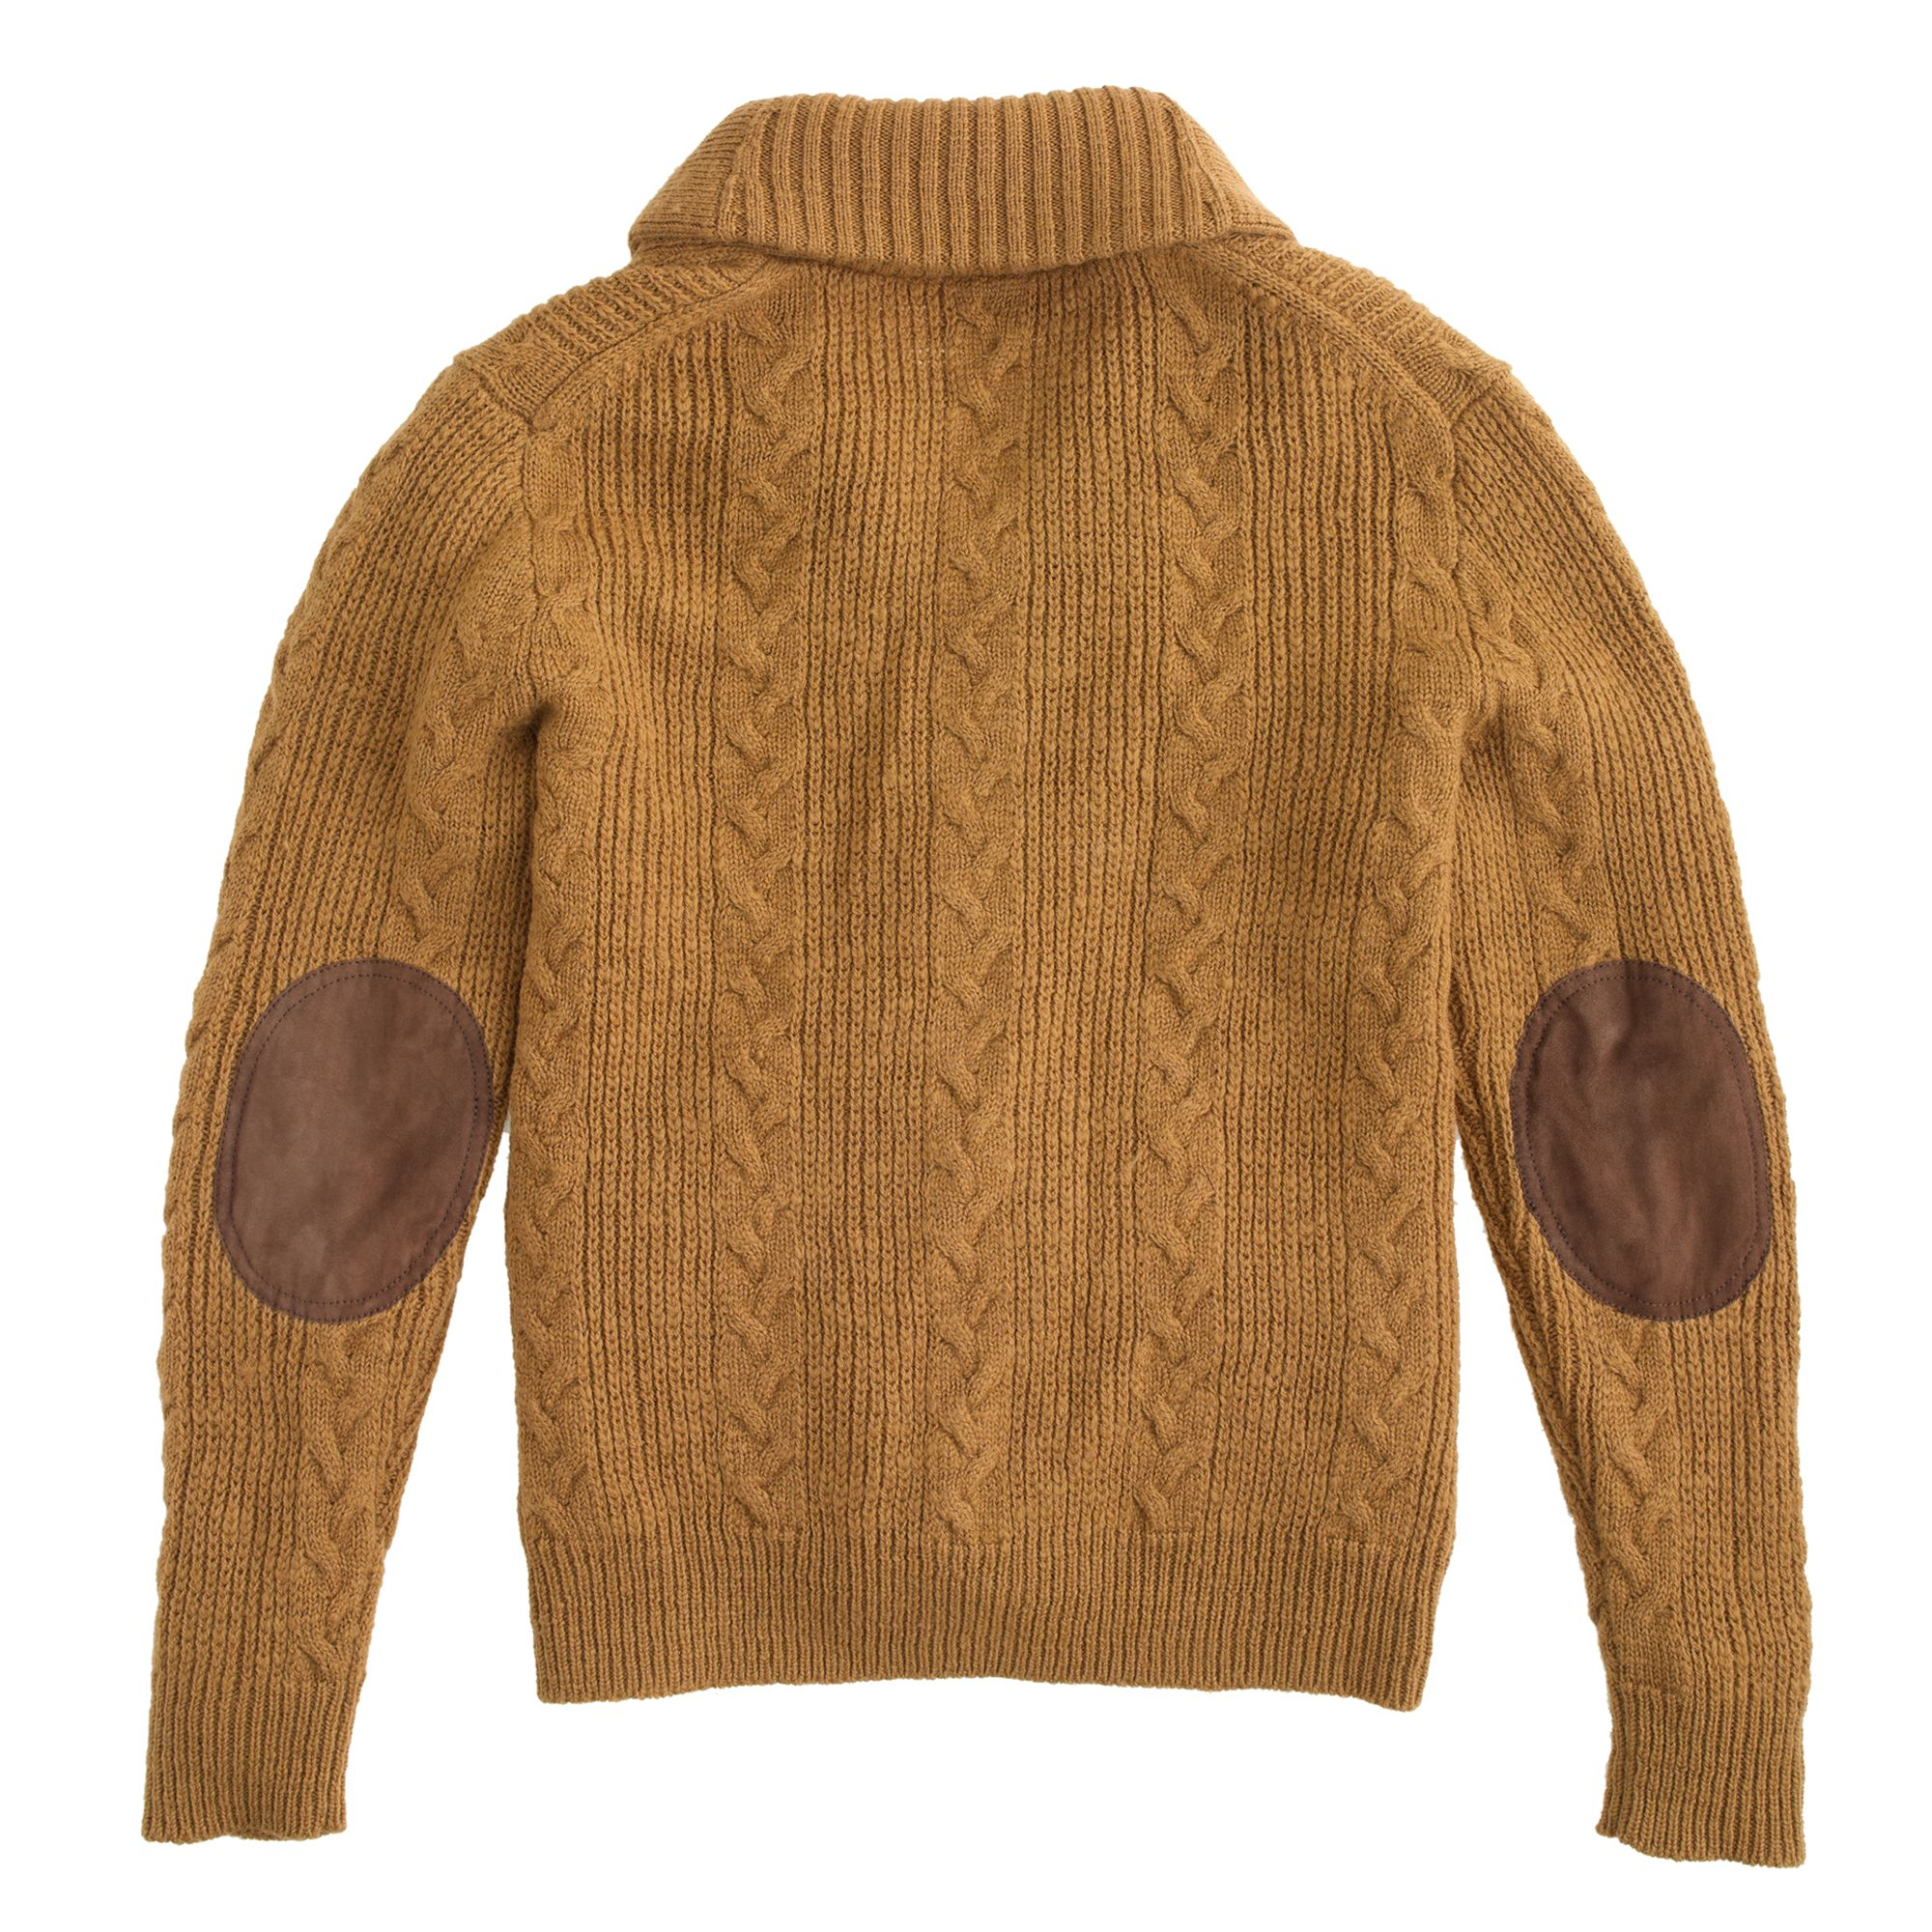 J.crew Wallace & Barnes Cable Cardigan Sweater In Brown